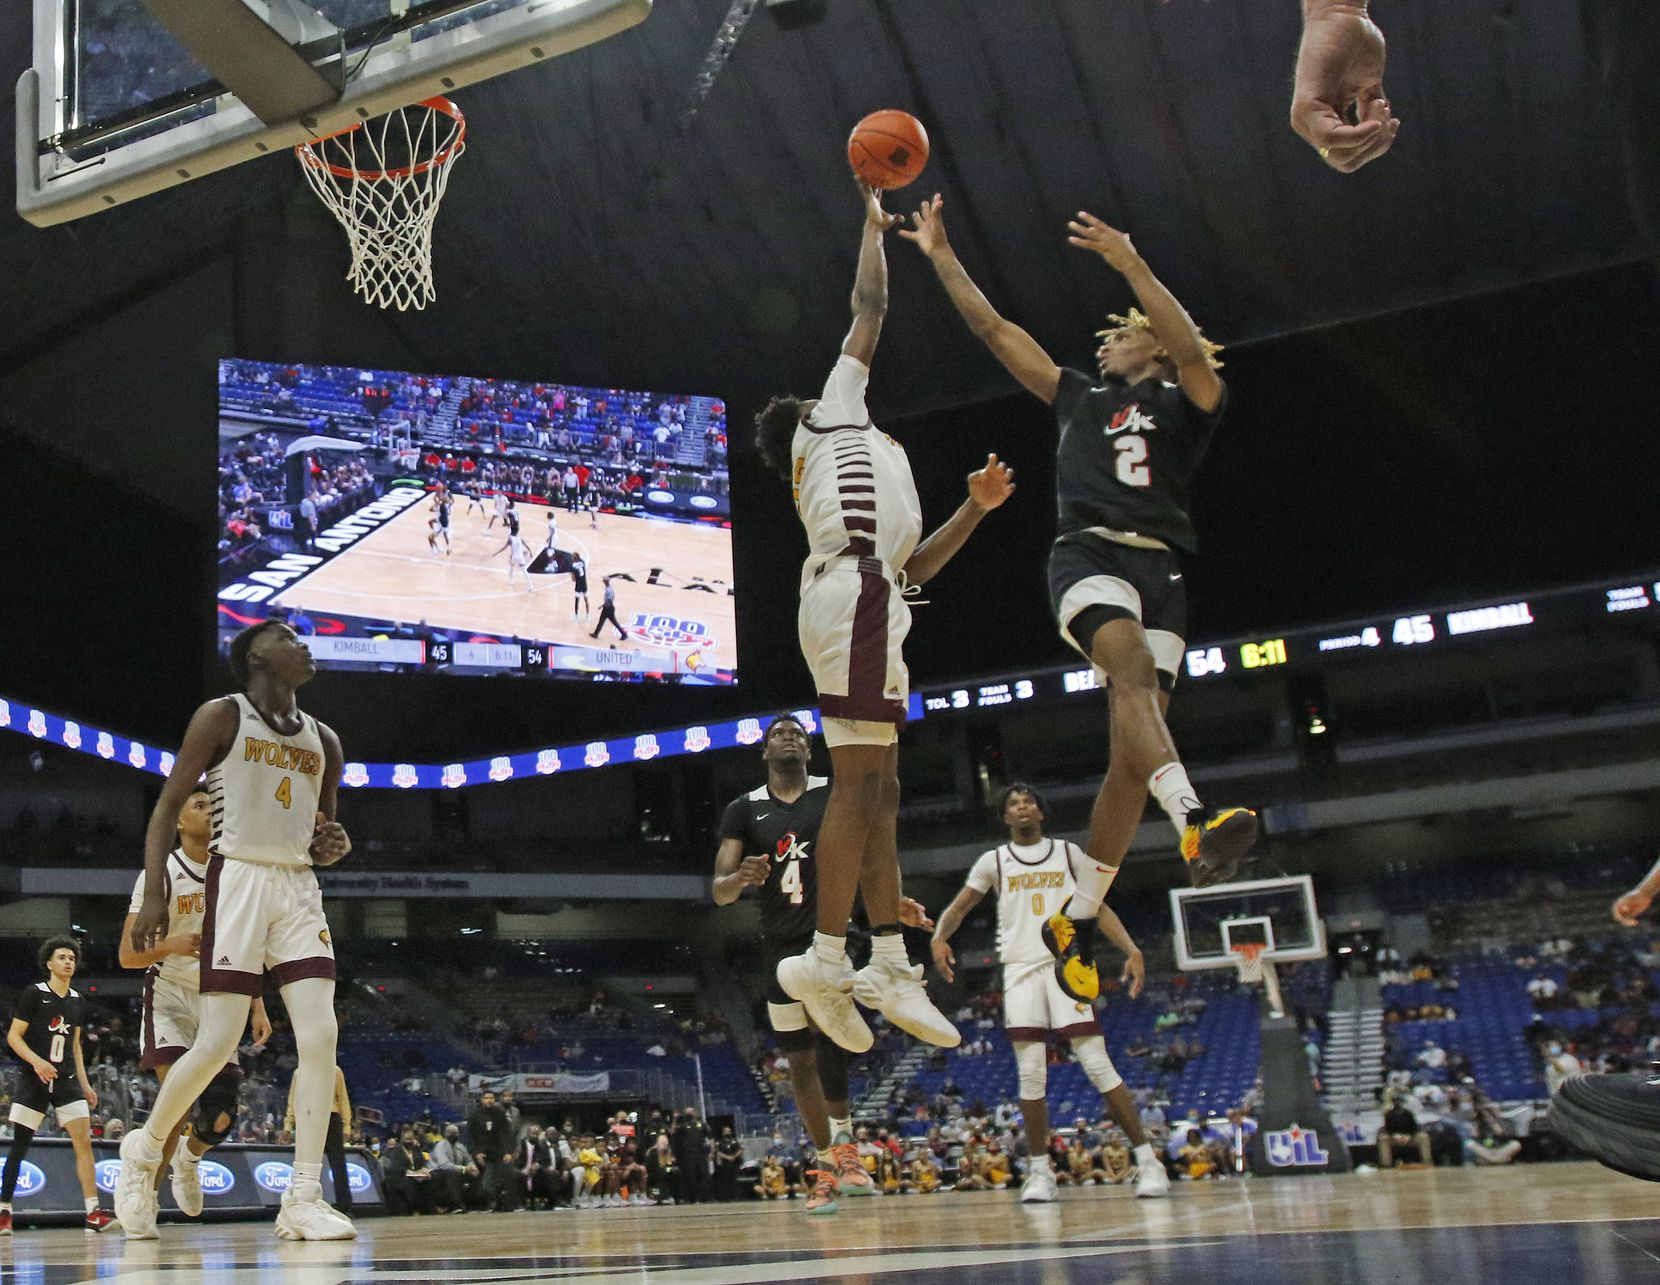 Dallas Kimball Arterio Morris #2 shots over a Beaumont defender. UIL boys Class 5A basketball state championship game on Friday, March 12, 2021 at the Alamodome.